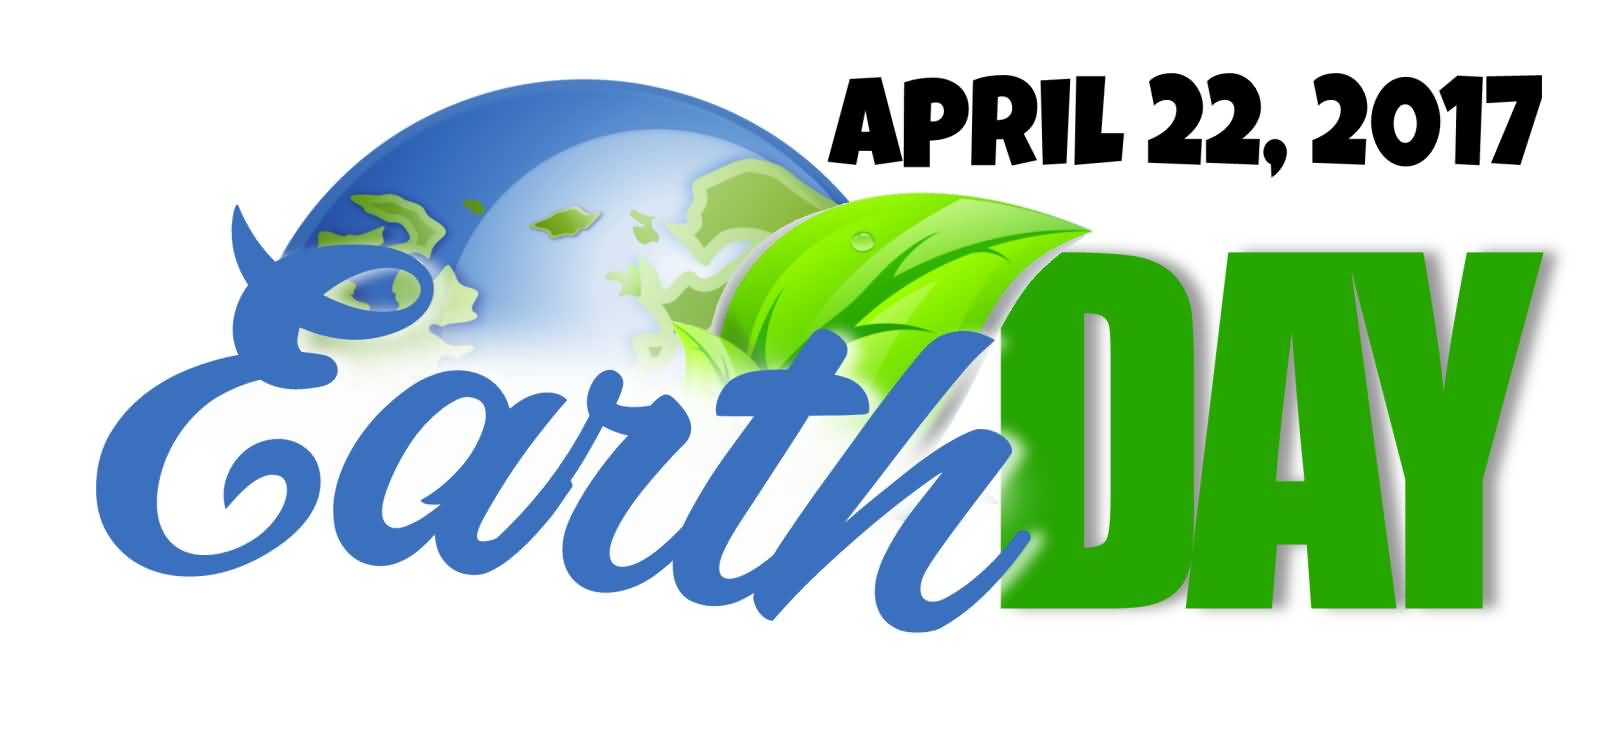 Most wonderful earth day wishes pictures and images clipart 2